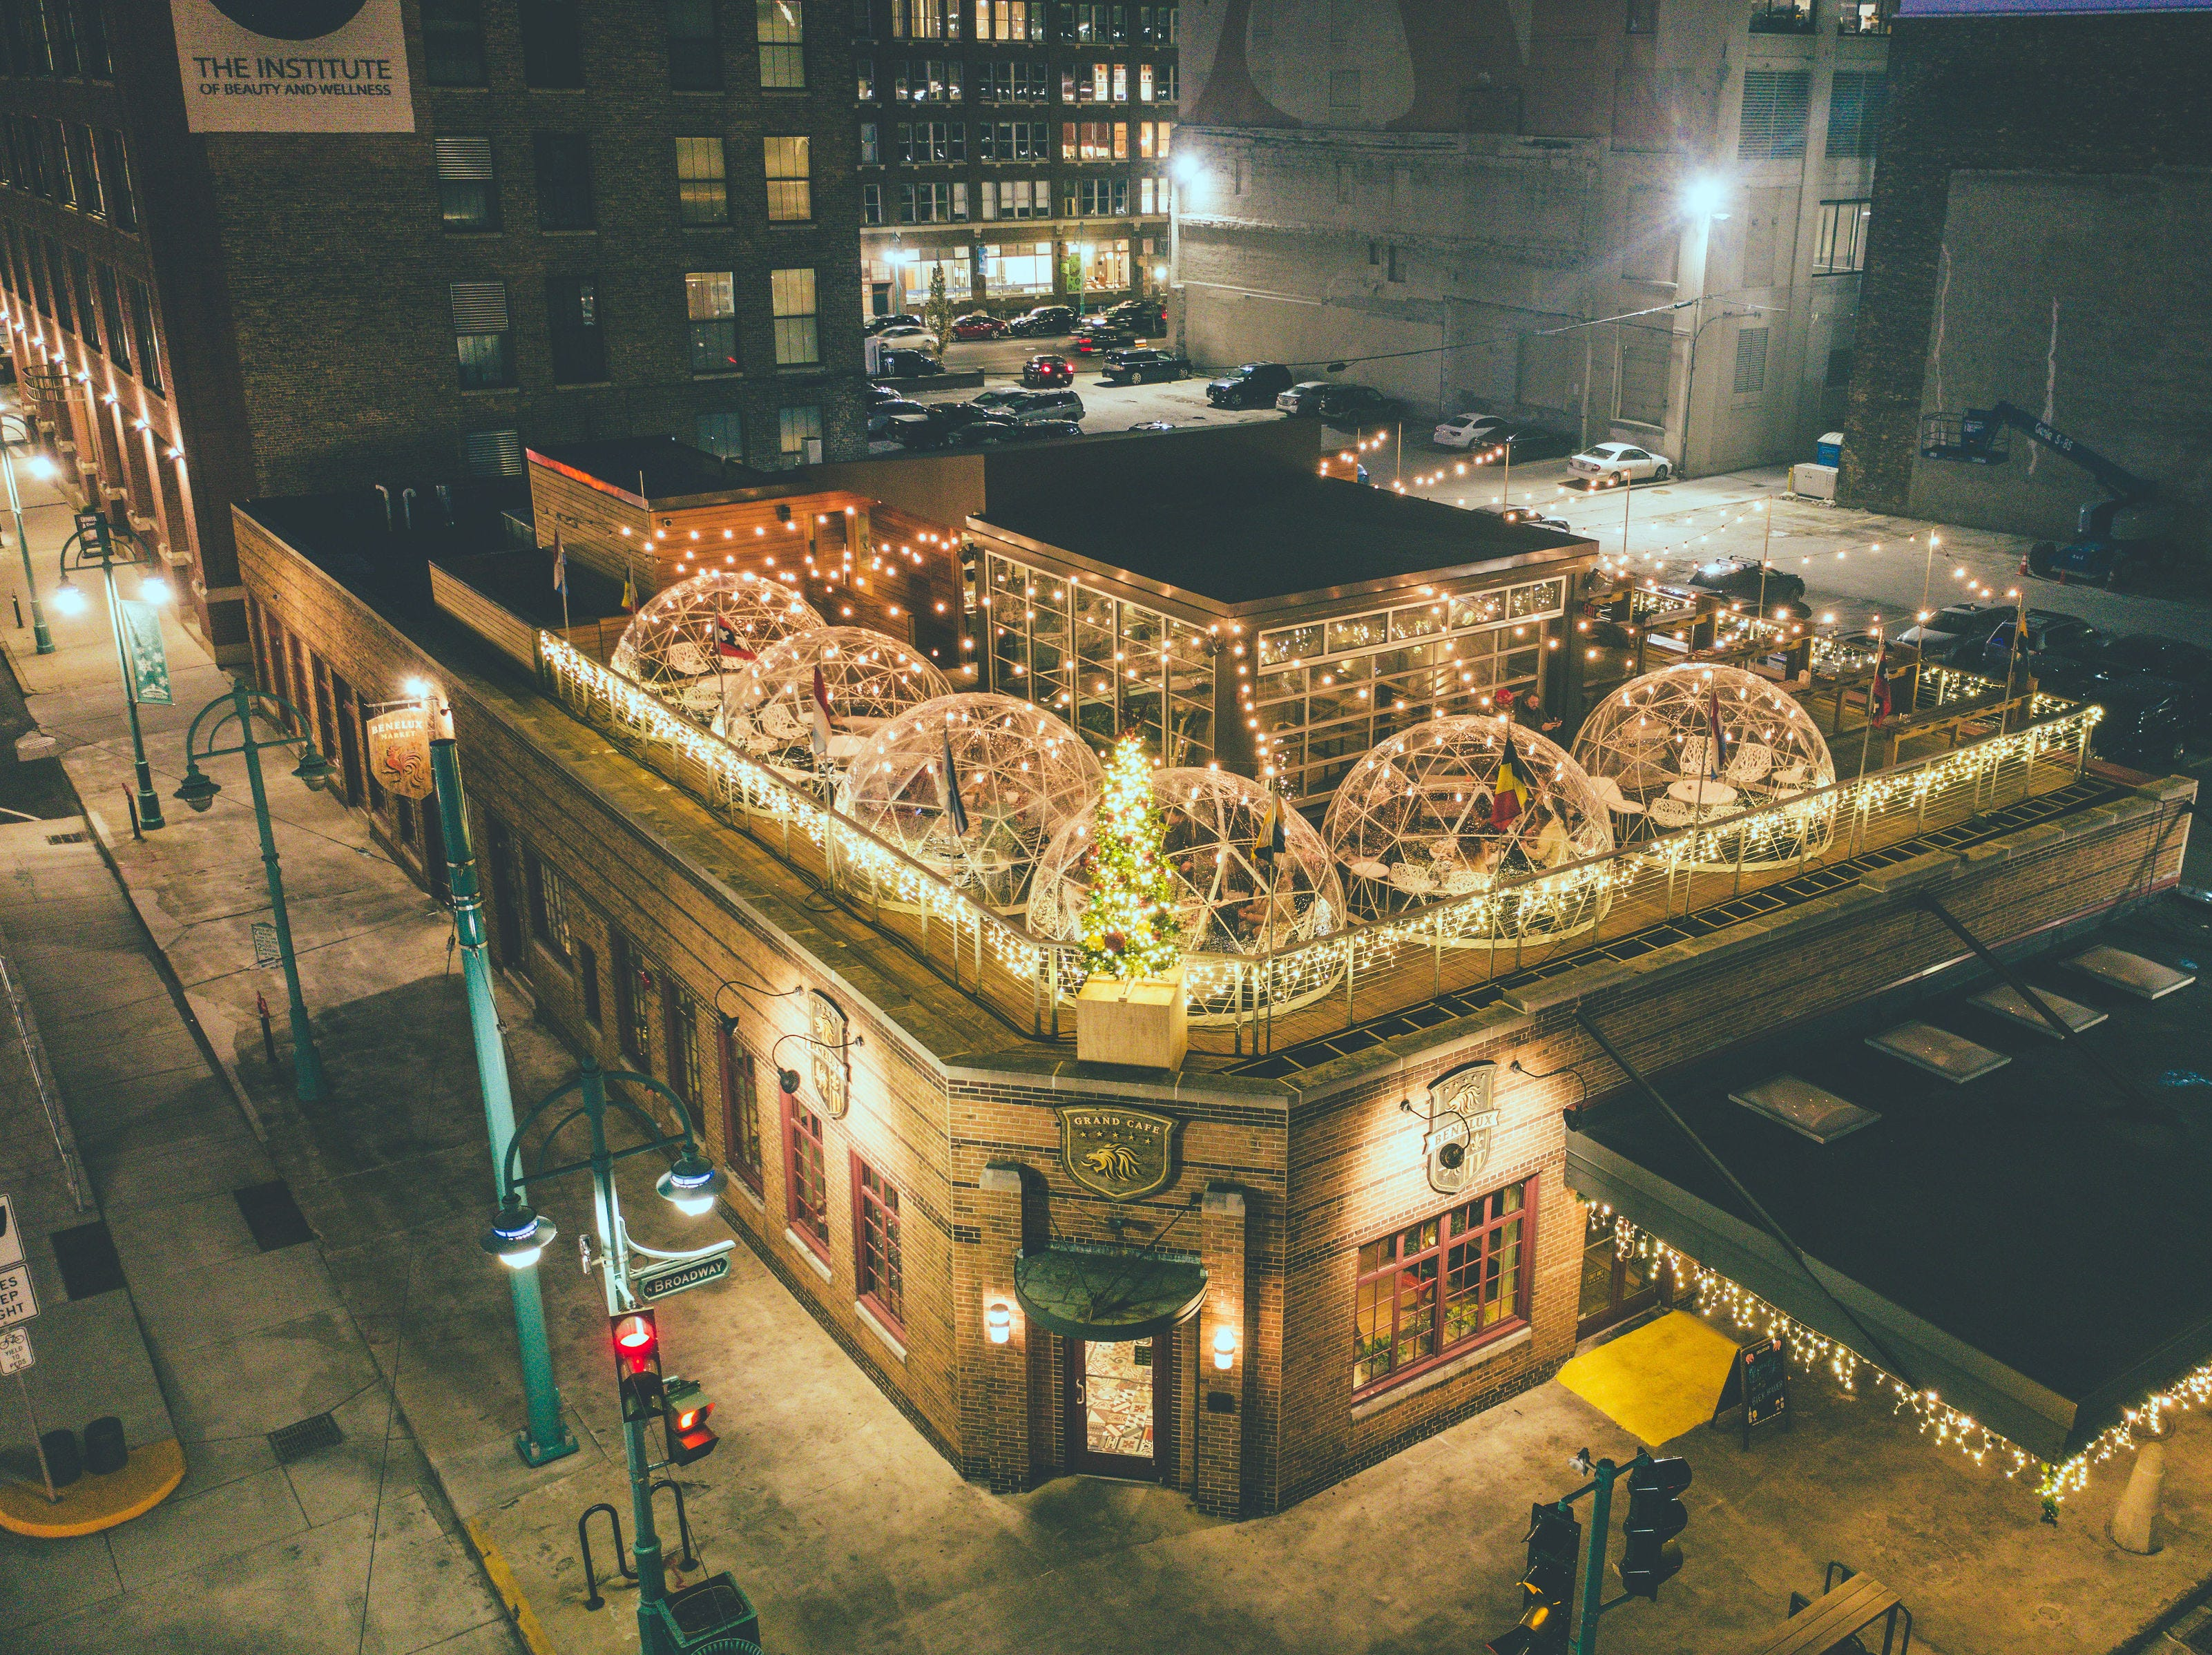 Café Benelux has added rooftop igloos so patrons can enjoy the great outdoors  all winter.